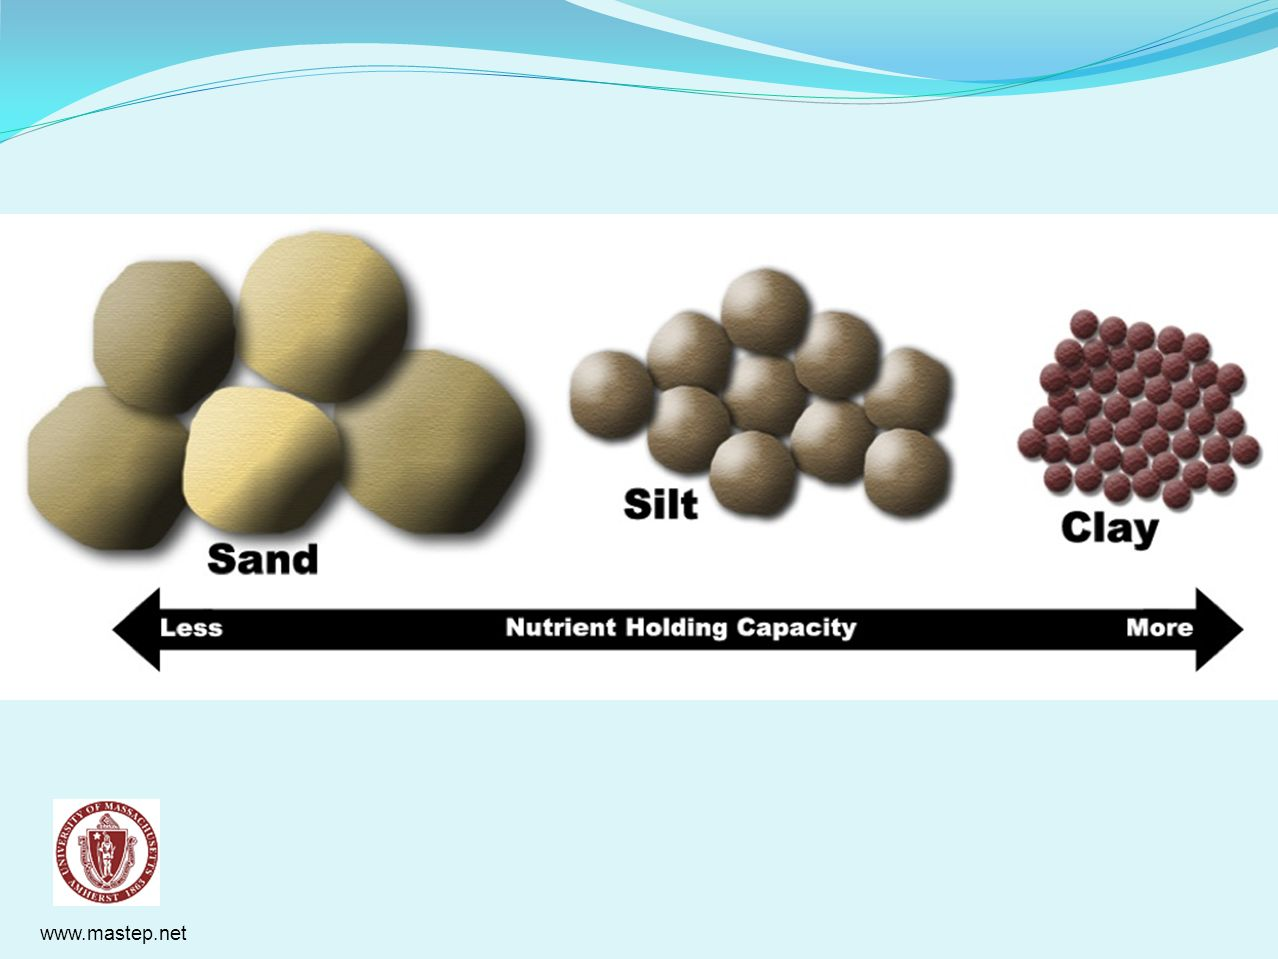 Particle size is important: